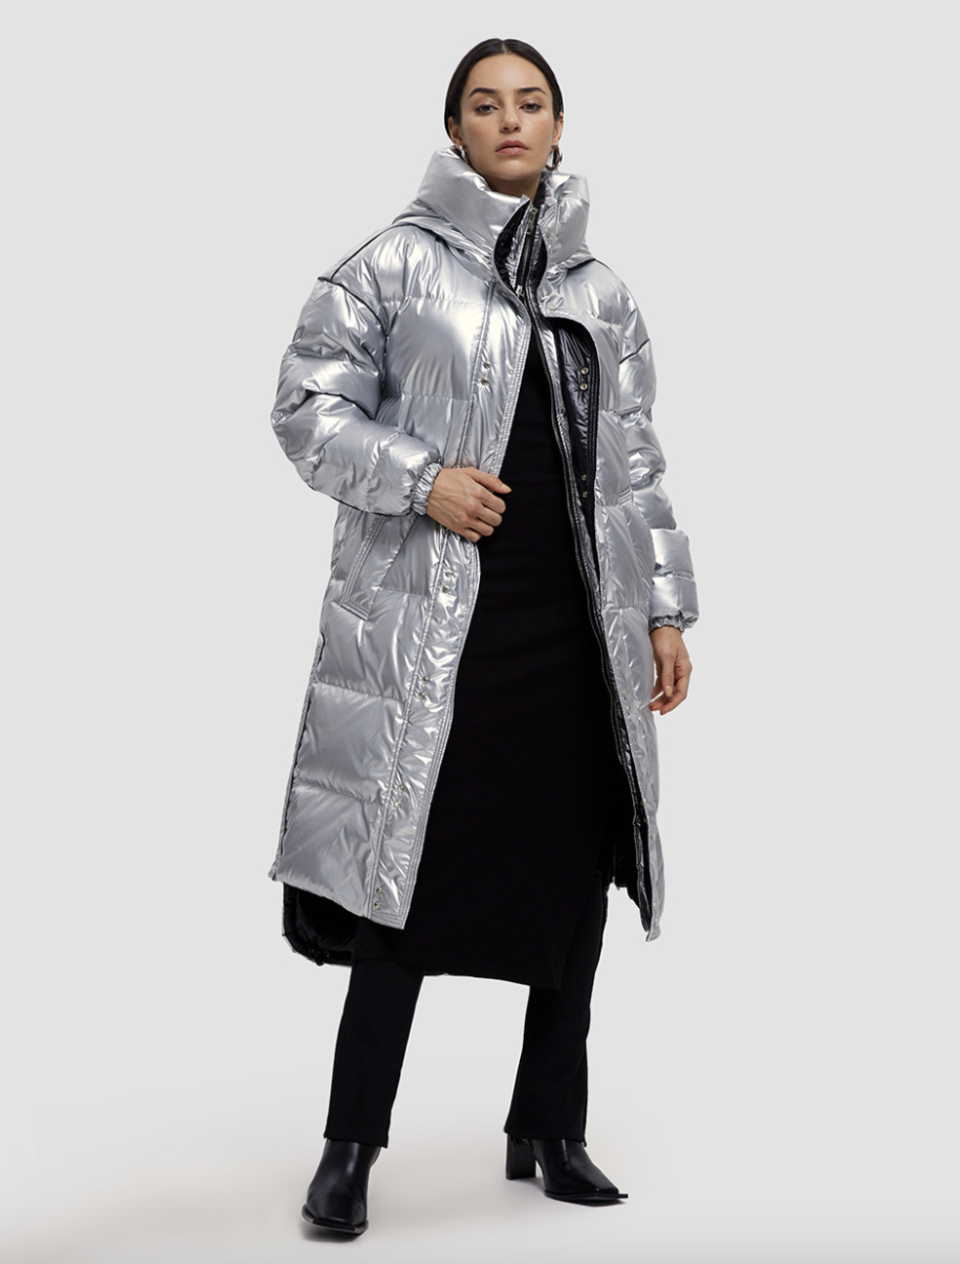 Lattelier Maxi Shiny Puffer Jacket in silver with black boots